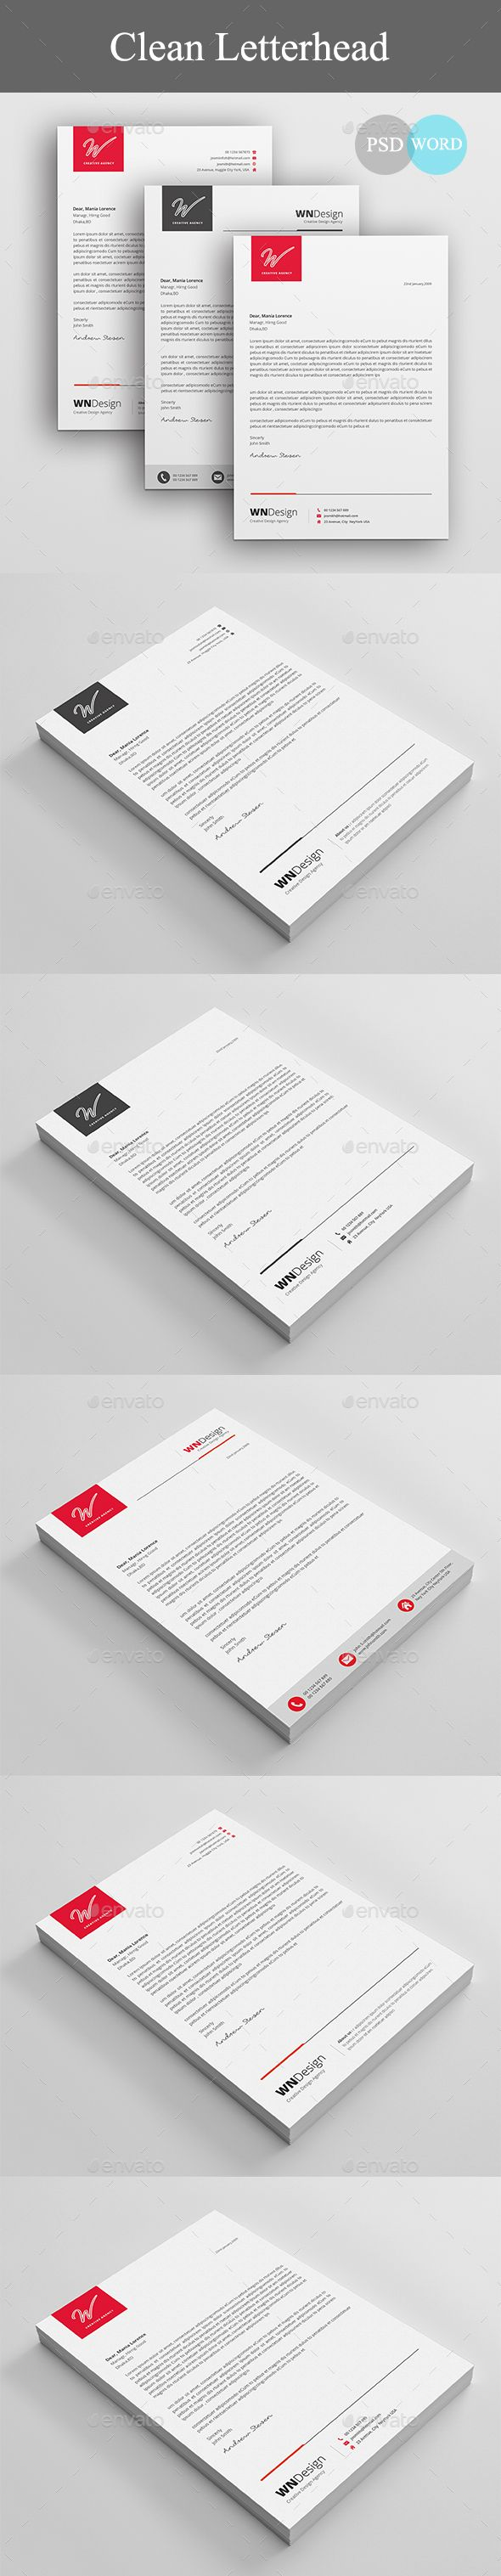 Best Letterhead Design Images On   Contact Paper